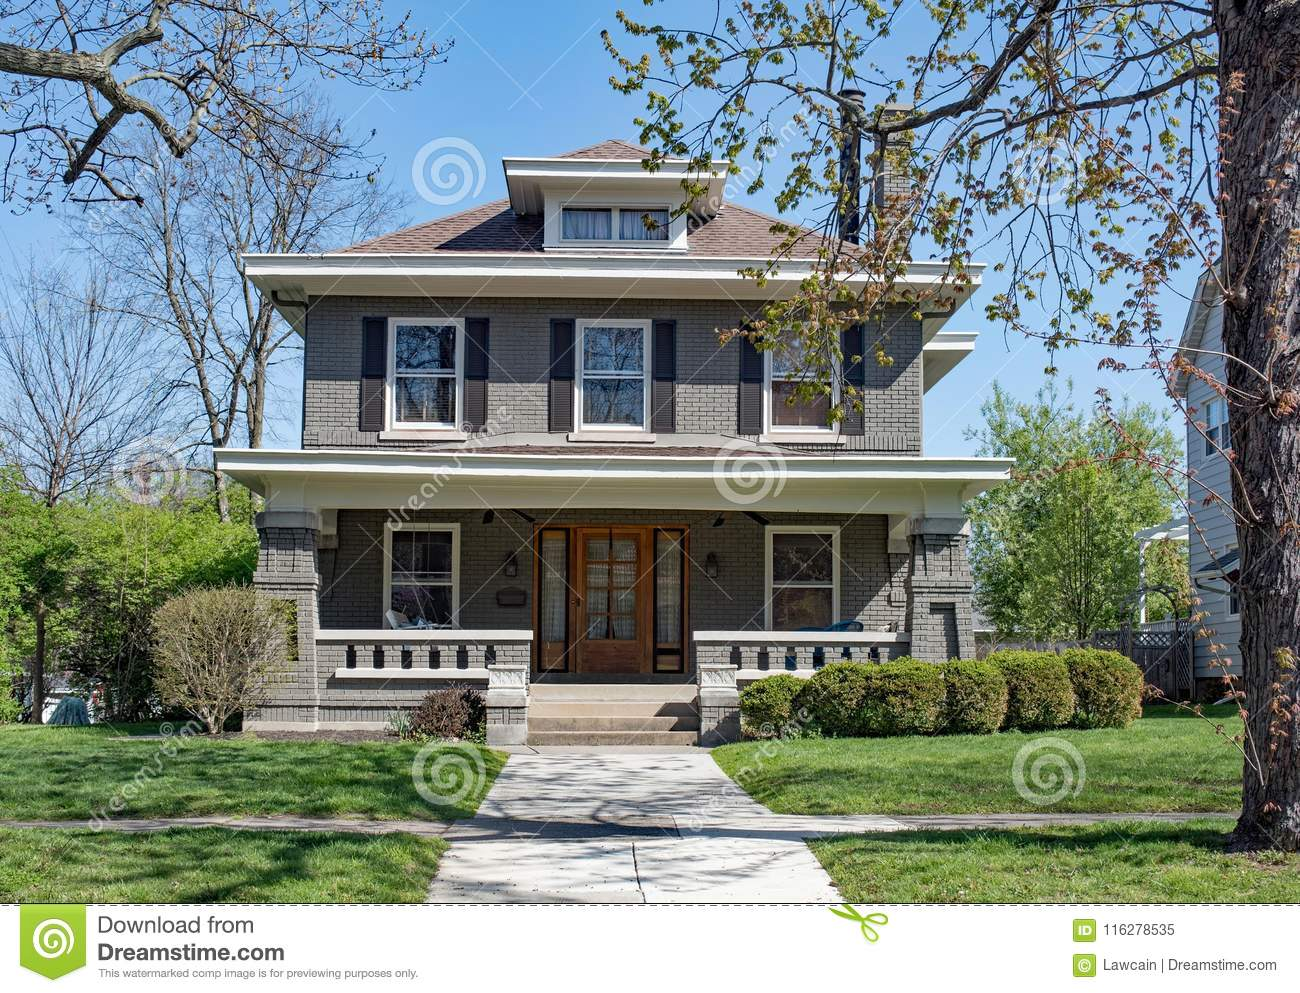 26 916 Craftsman House Photos Free Royalty Free Stock Photos From Dreamstime